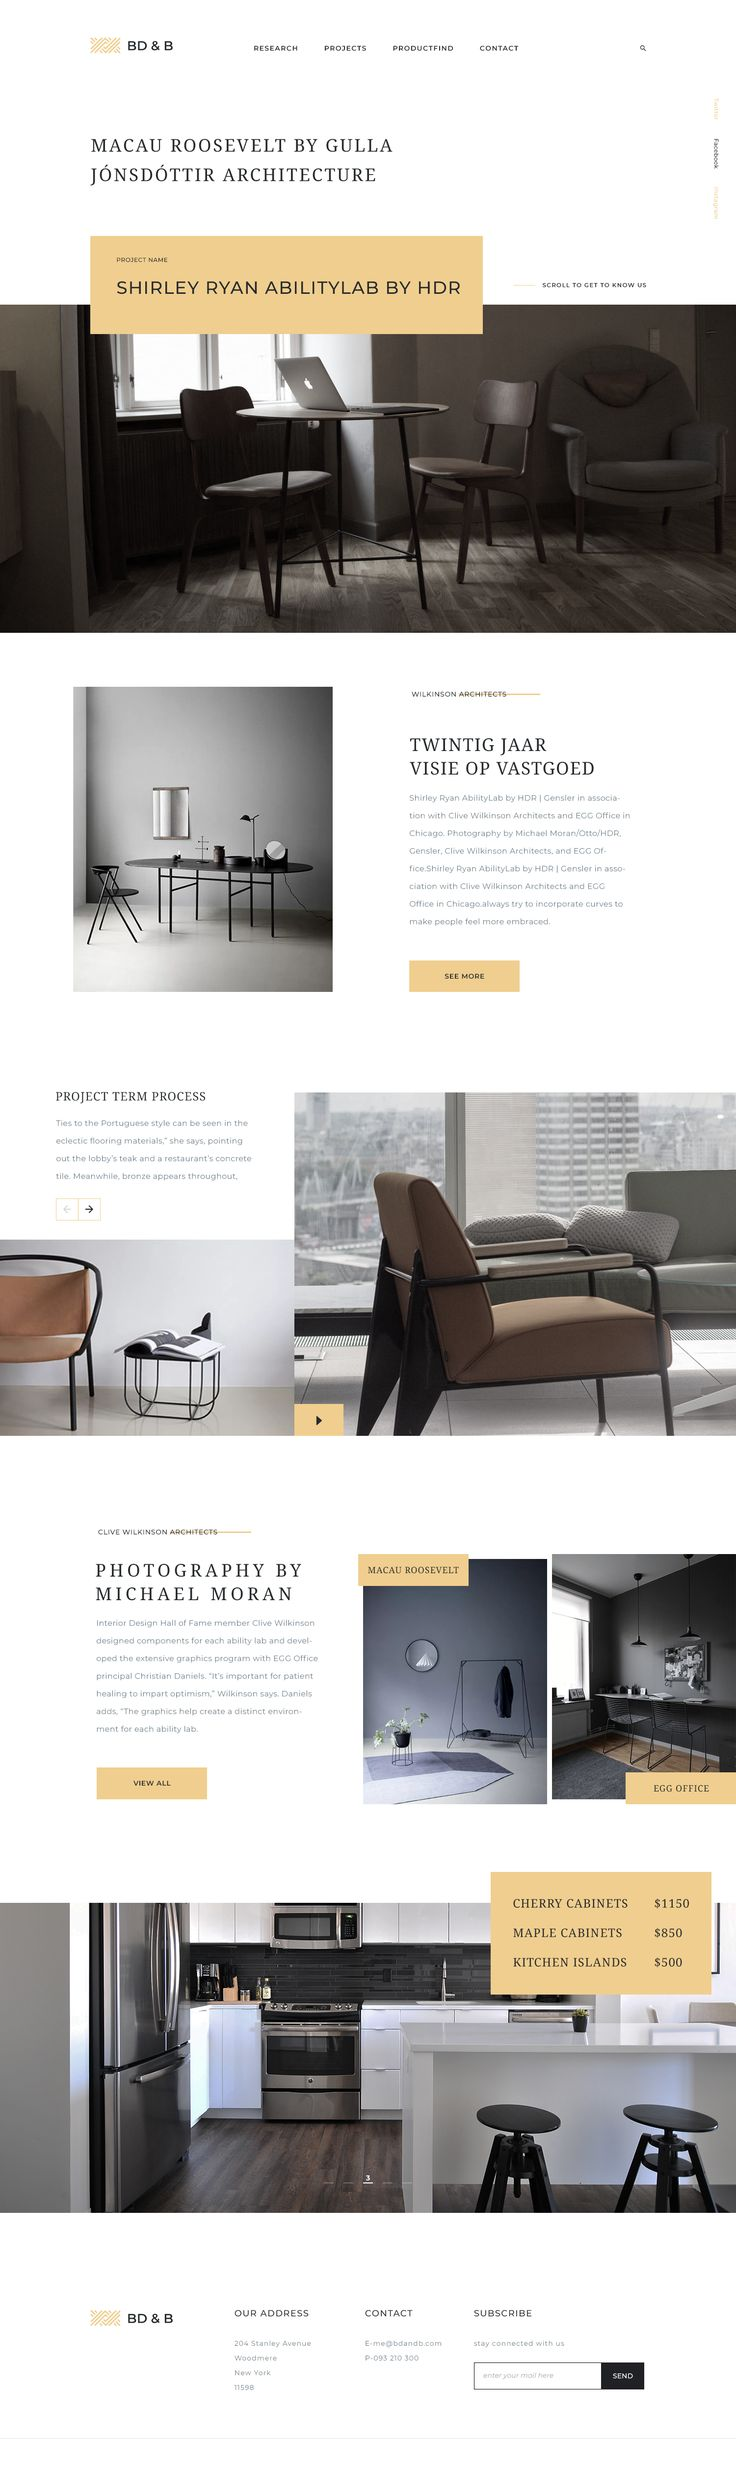 "Furniture Landing Page UI Design Follow me on <a href=""https://dribbble.com/AbirMahmood"" rel=""nofollow noreferrer"">Dribbble</a> 